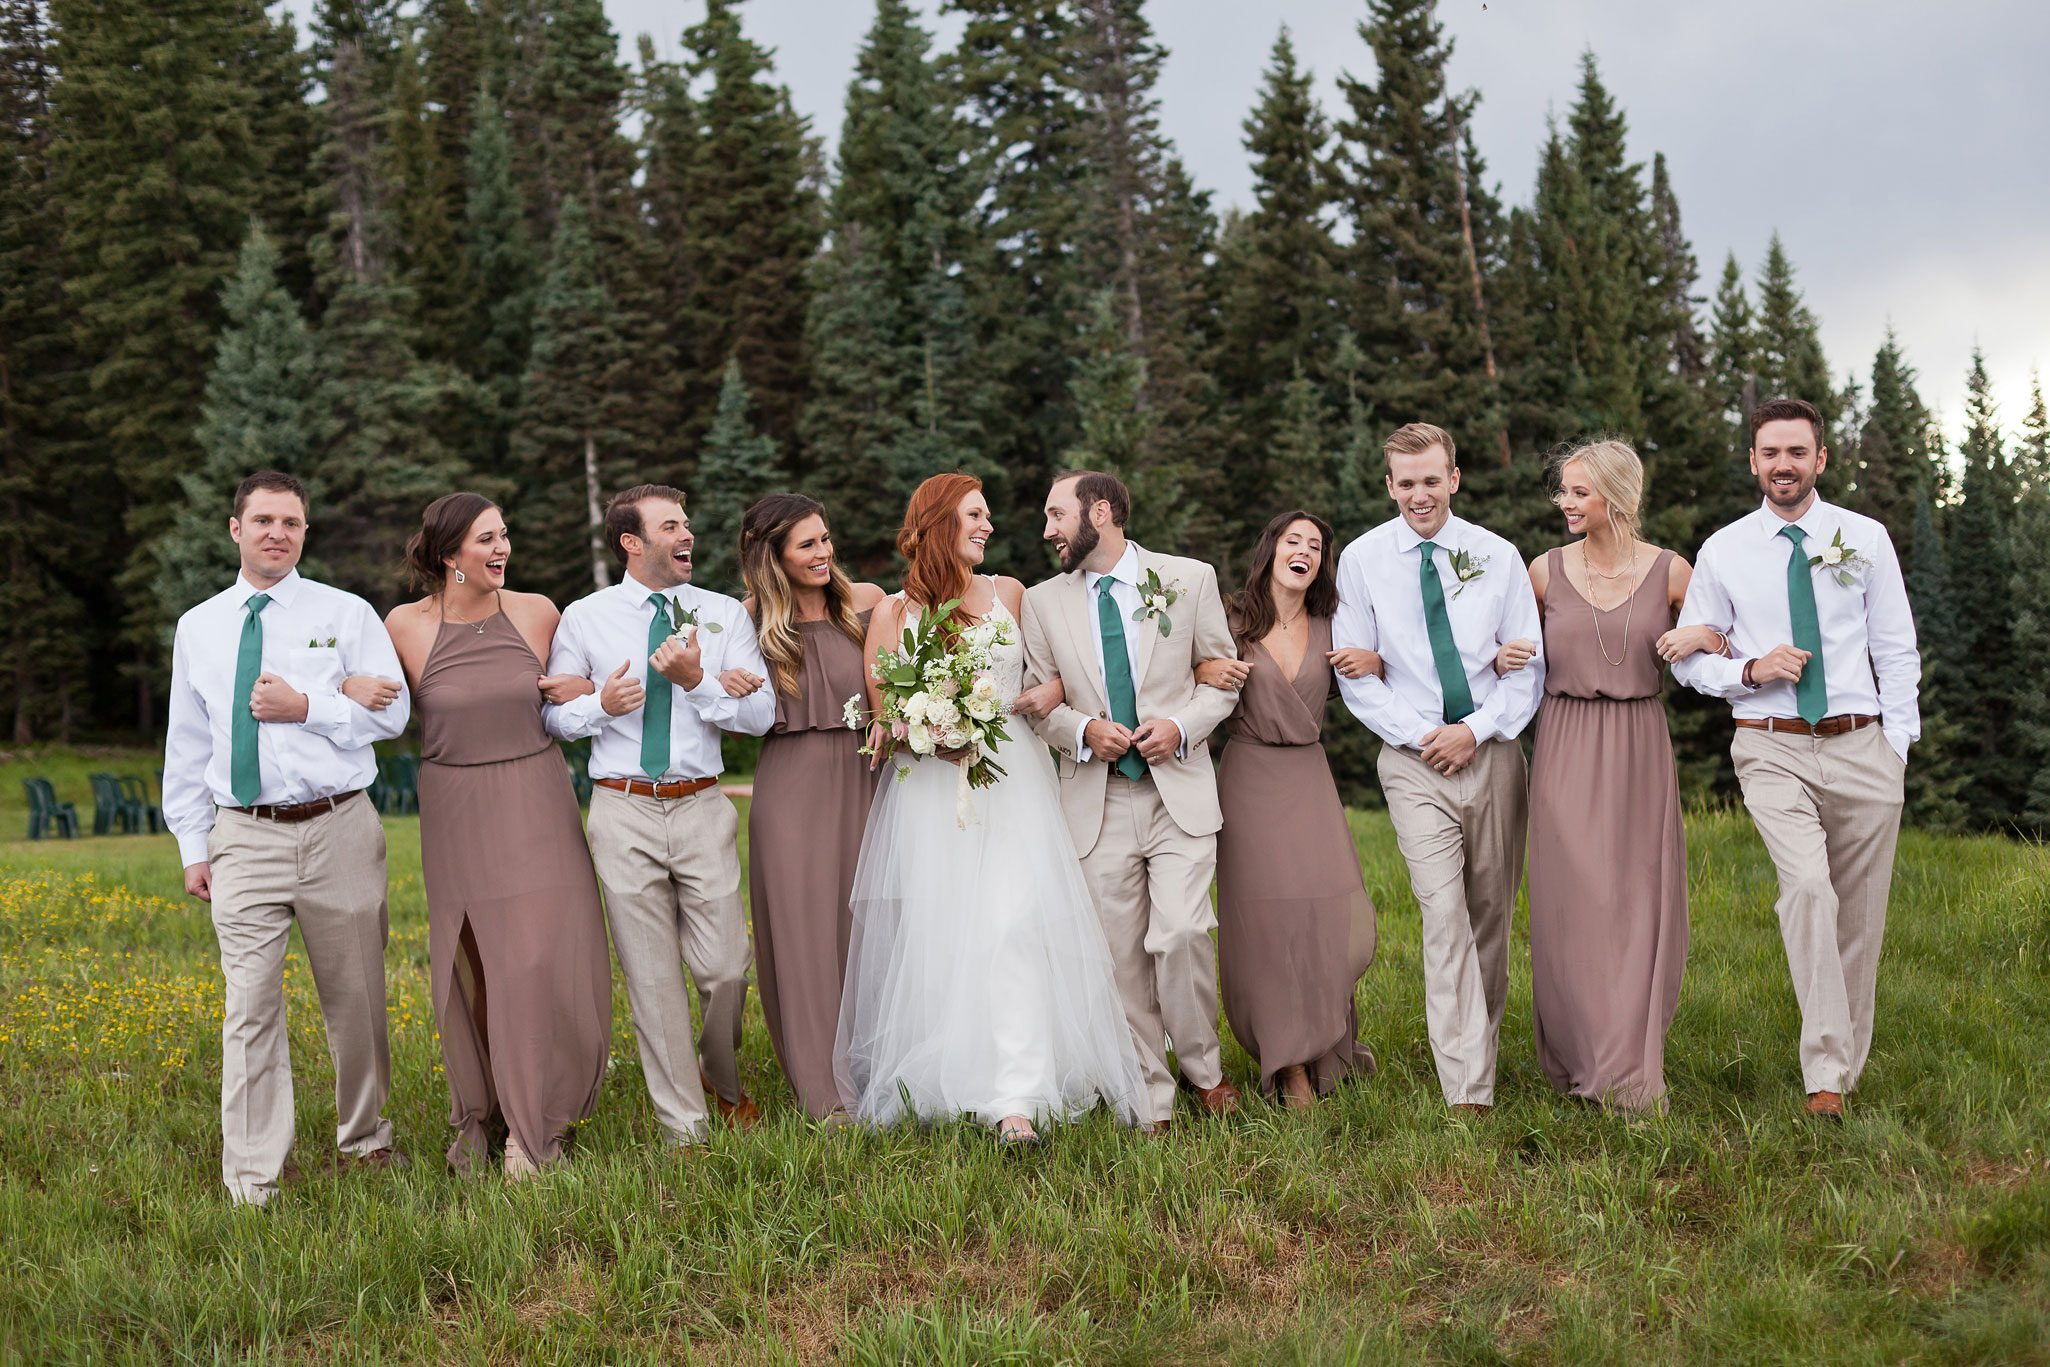 Wedding Party | A Mountaintop Wedding in Durango, Colorado